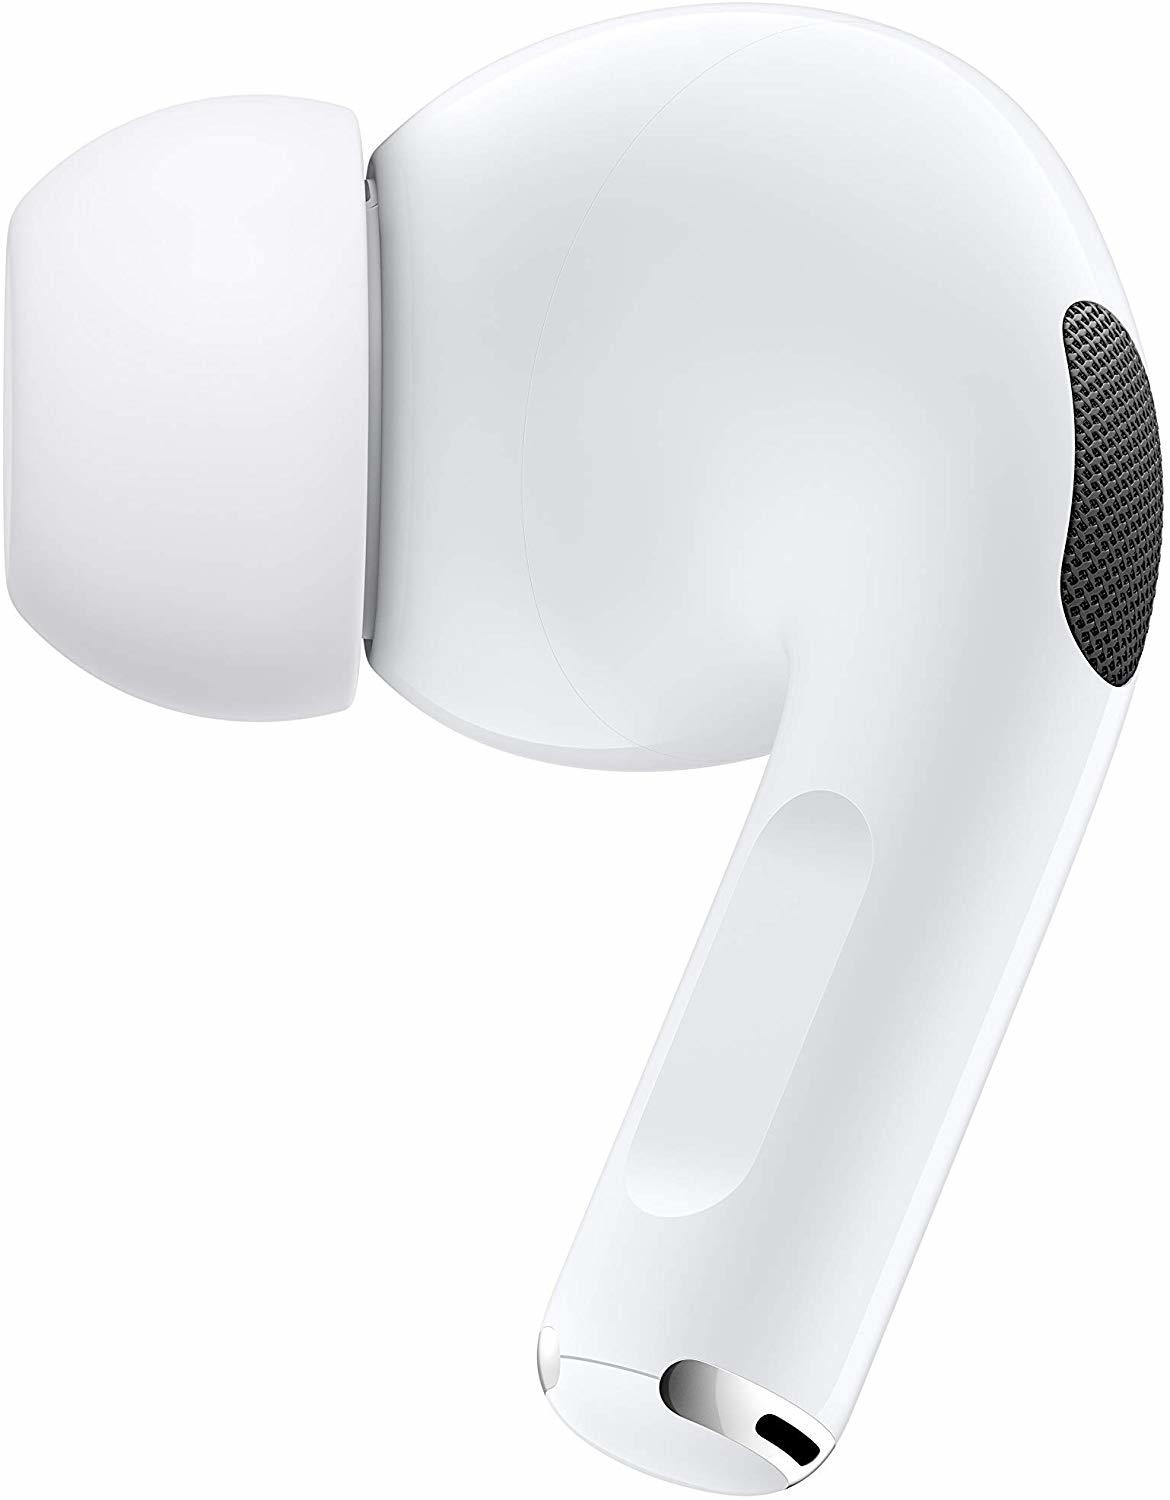 Apple AirPods Pro Noise Cancelling In-Ear Headphones image